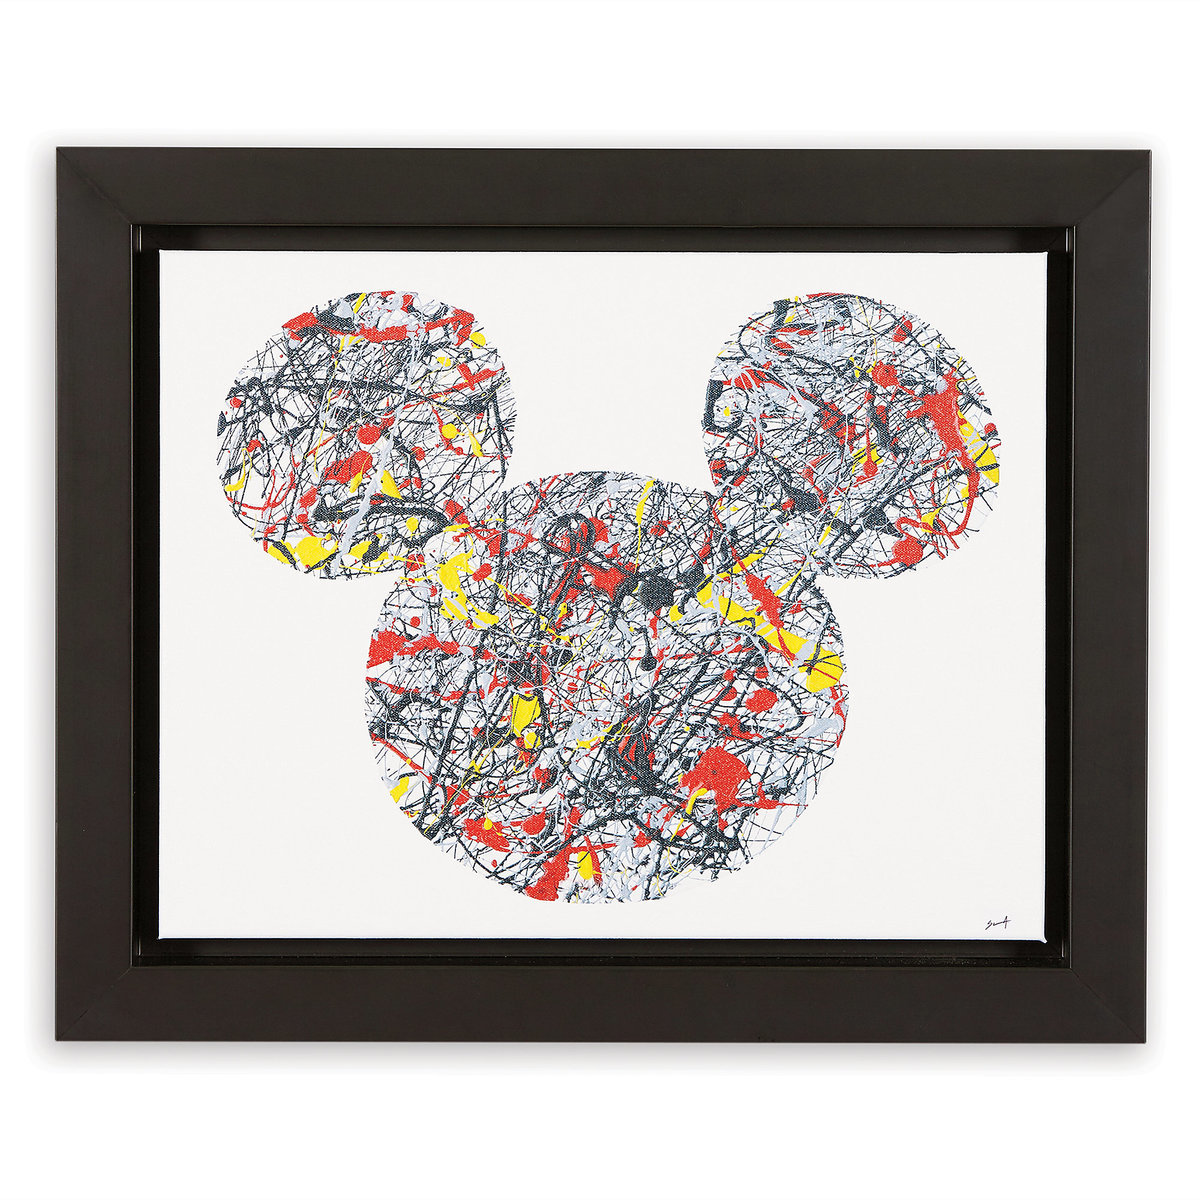 883b0850528f1 Product Image of Mickey Mouse ''Drip Paint Mickey'' Framed Giclée on Canvas